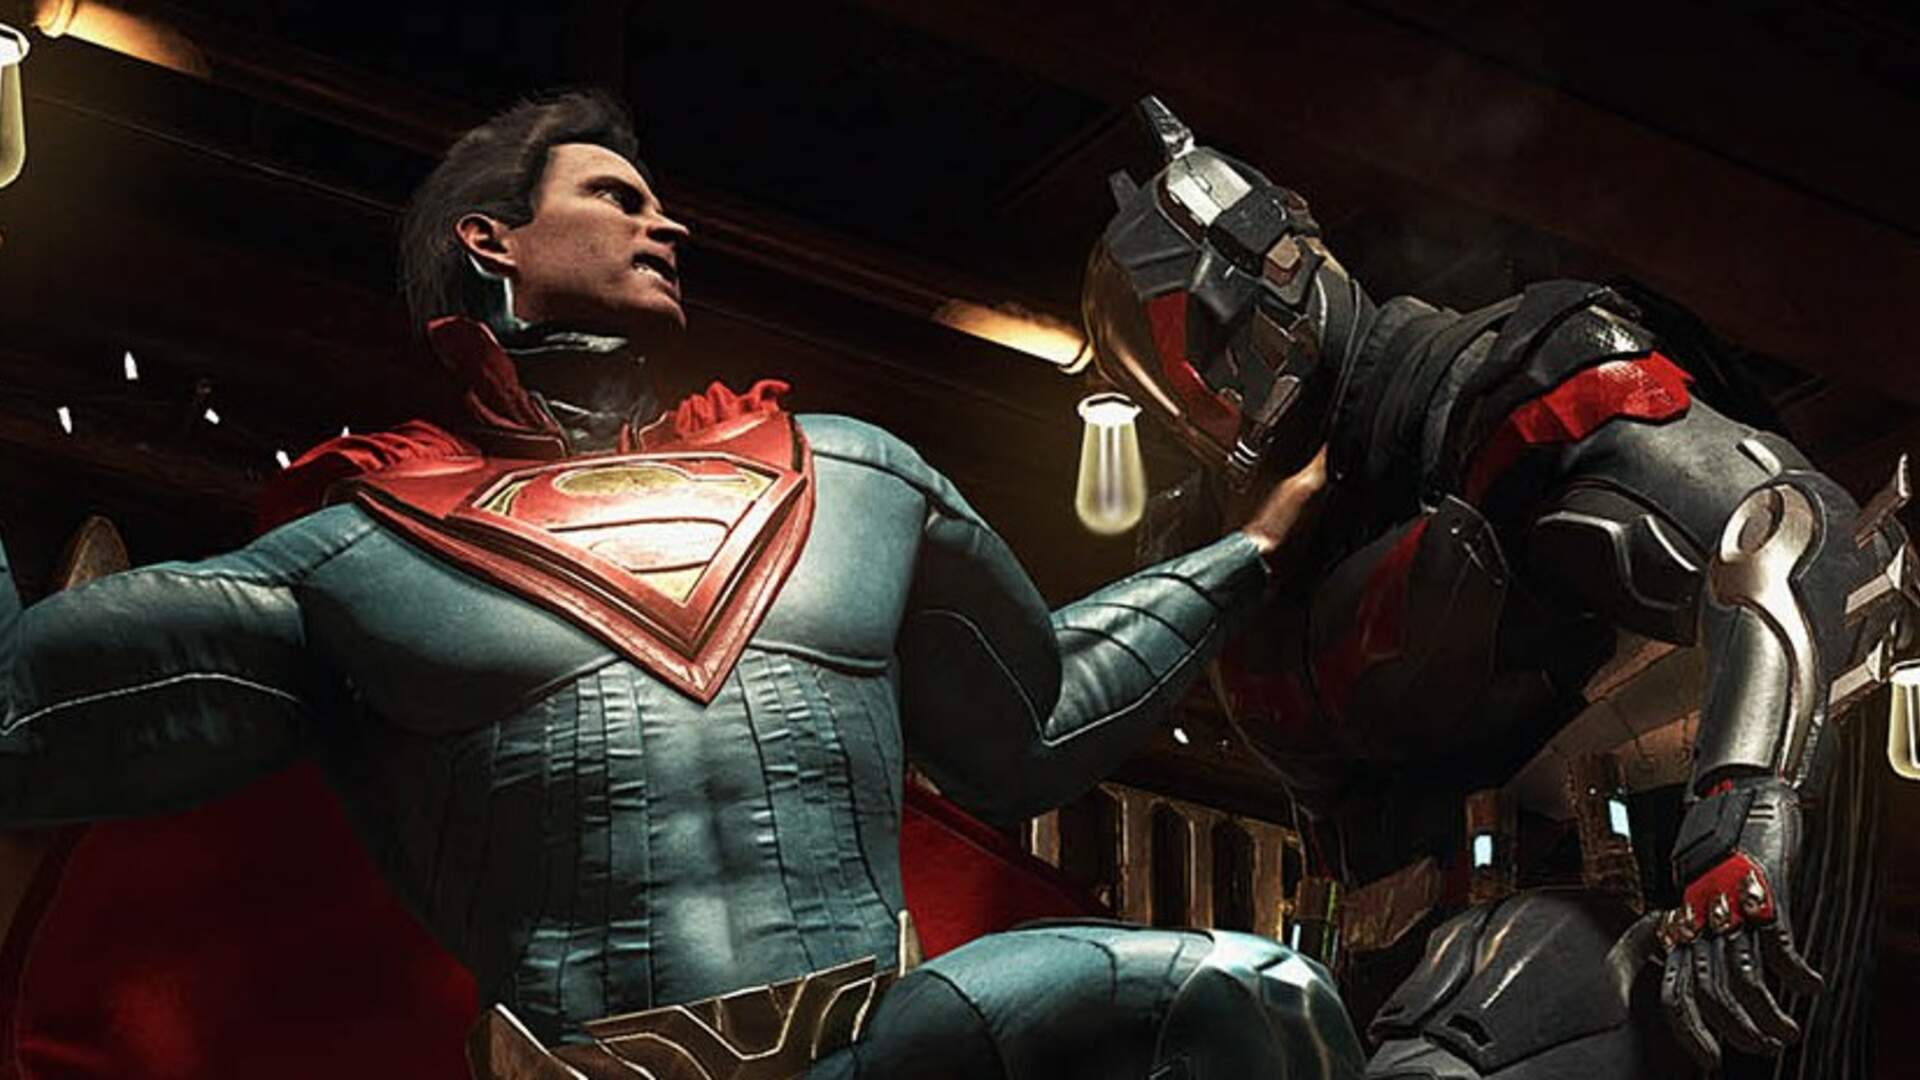 Injustice 2 Guide Earn Xp Quickly Tips And Tricks How To Unlock Character Items How To Earn Mother Boxes Usgamer